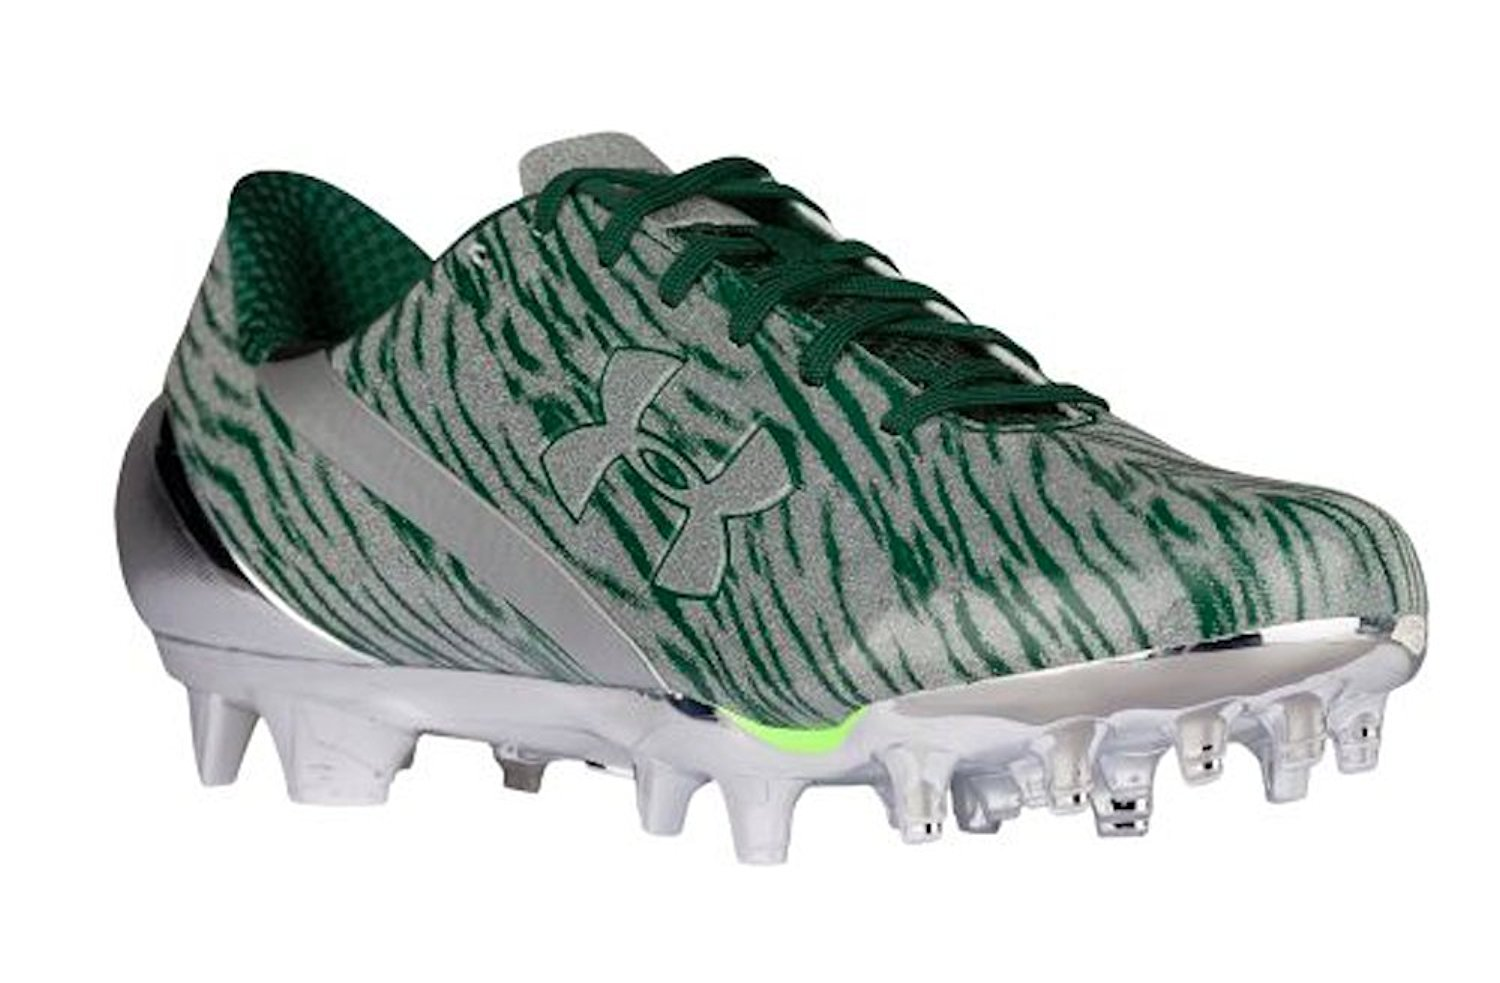 huge discount b8501 df5e0 Get Quotations · Size 9 Men s Under Armour Football Cleats Silver Forest  Green 80533 231